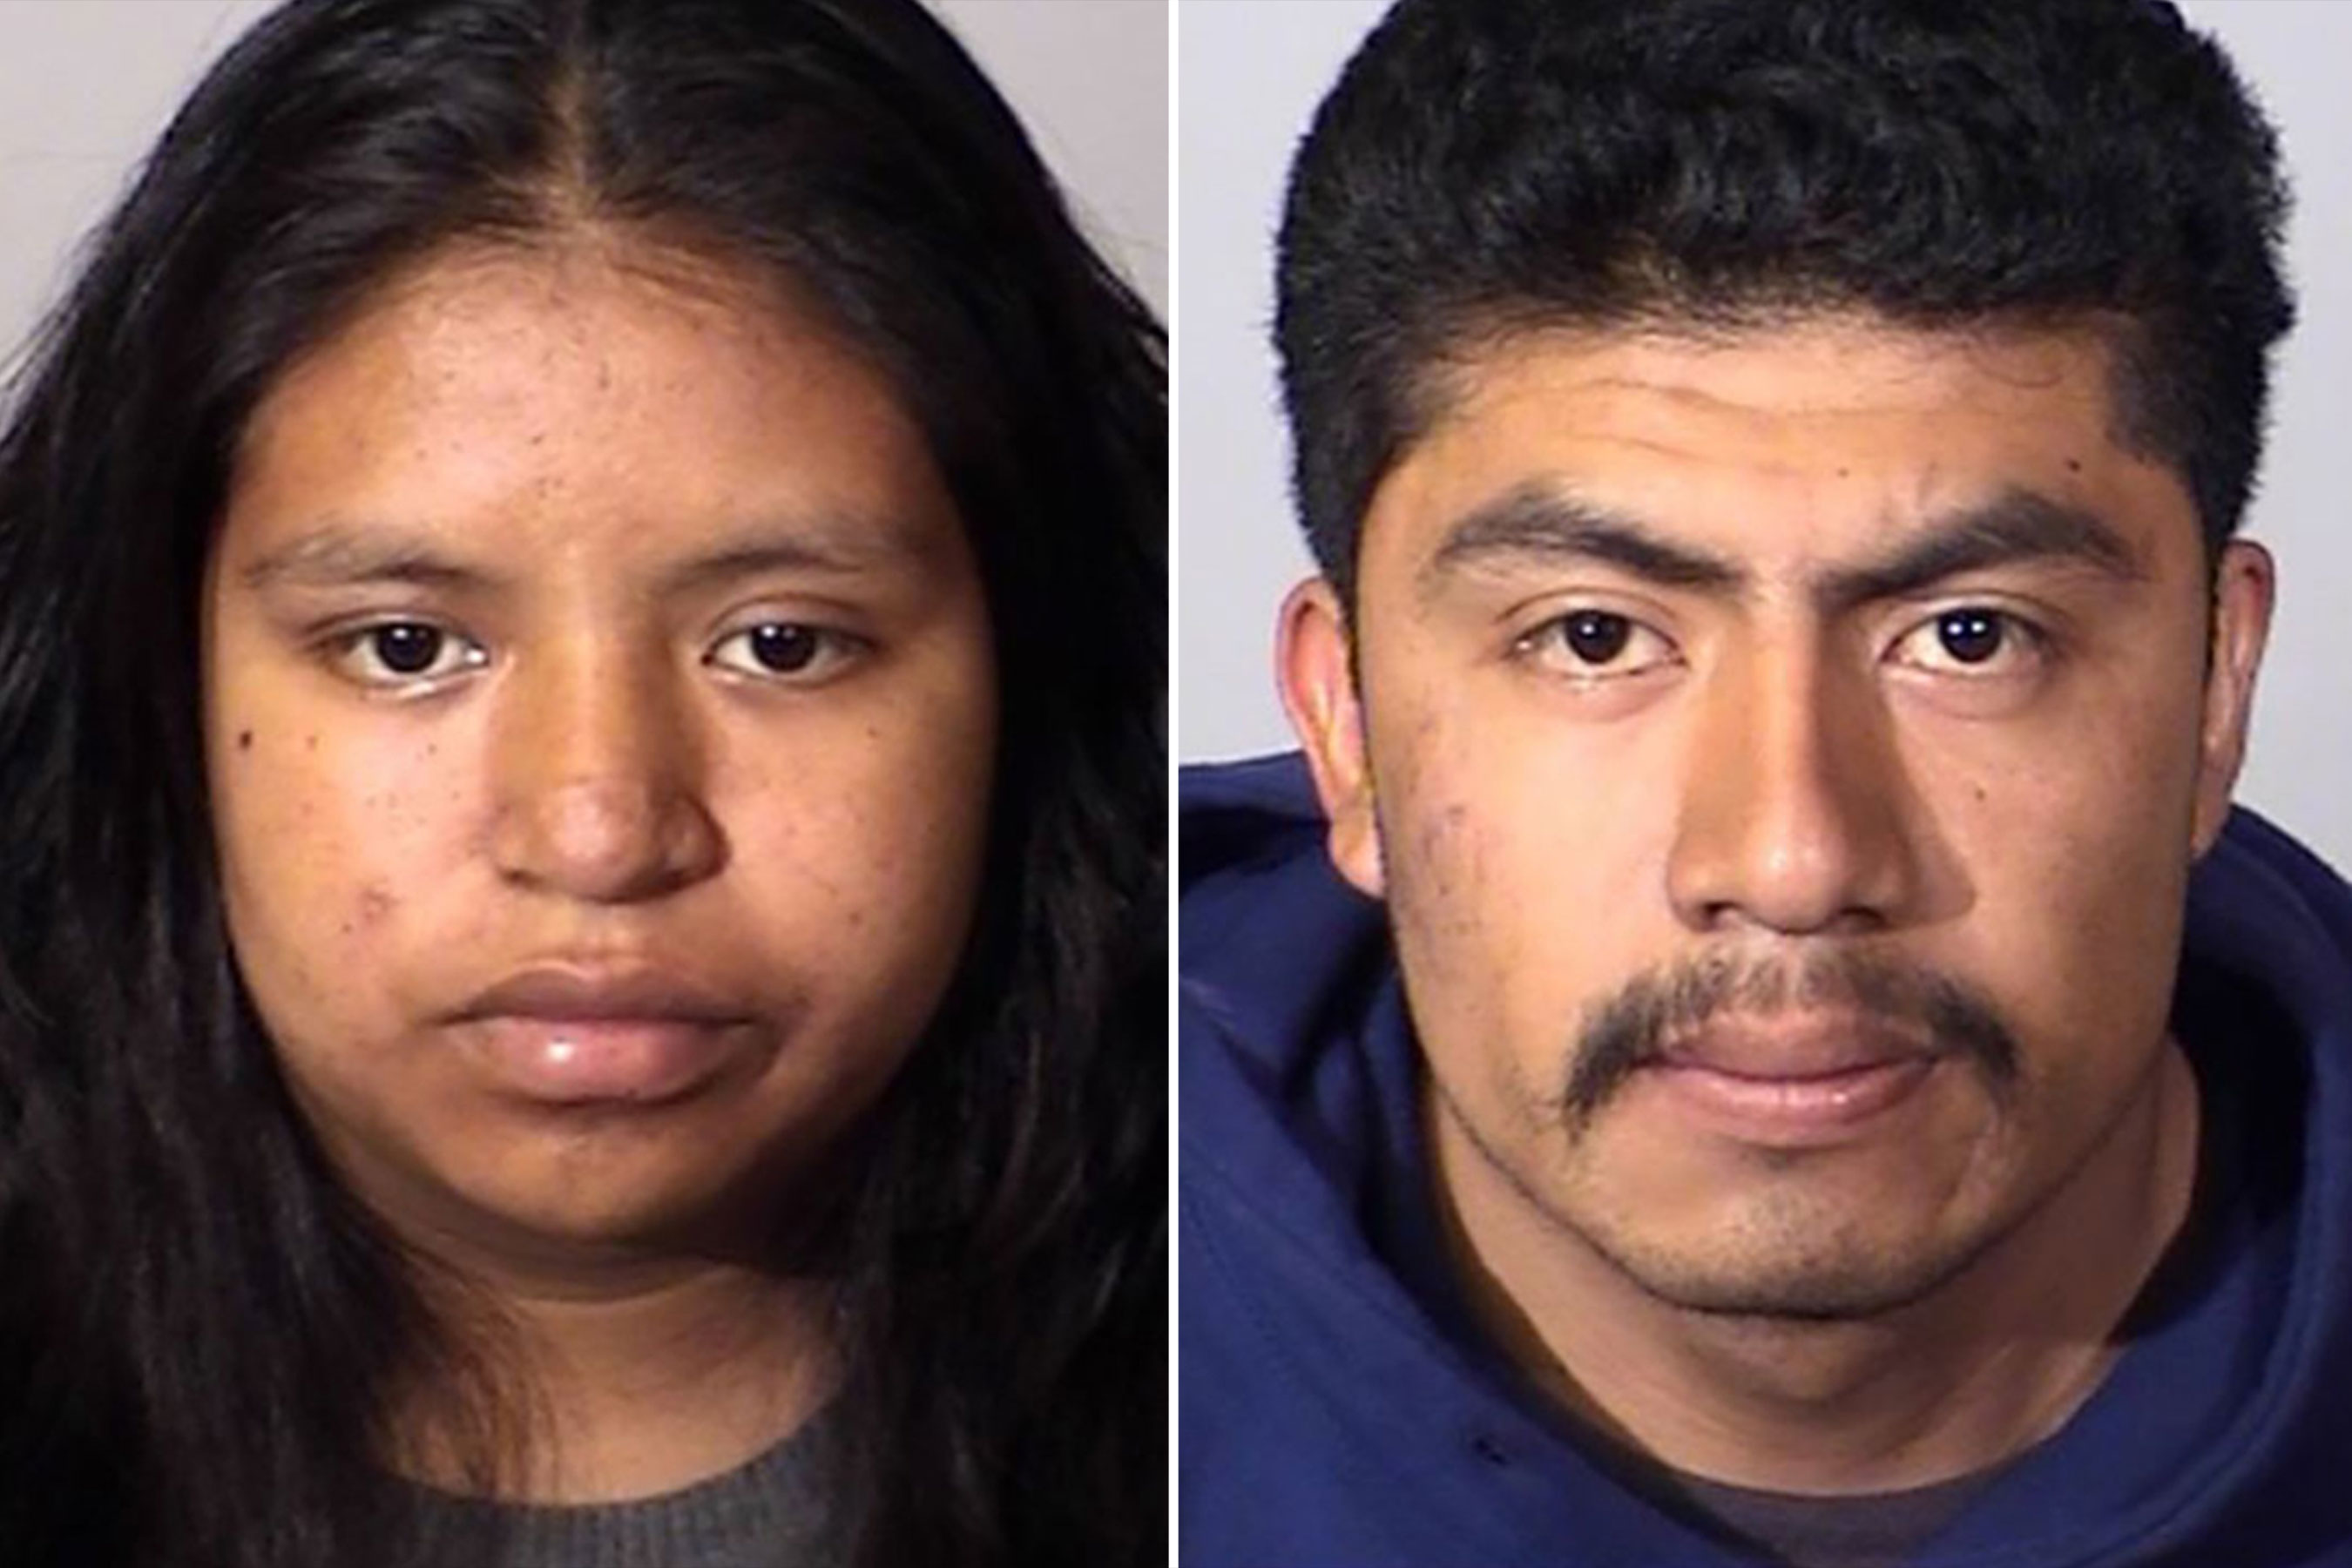 California Couple Allegedly Strangled Newborn in Hospital Room Shortly After Mom Gave Birth